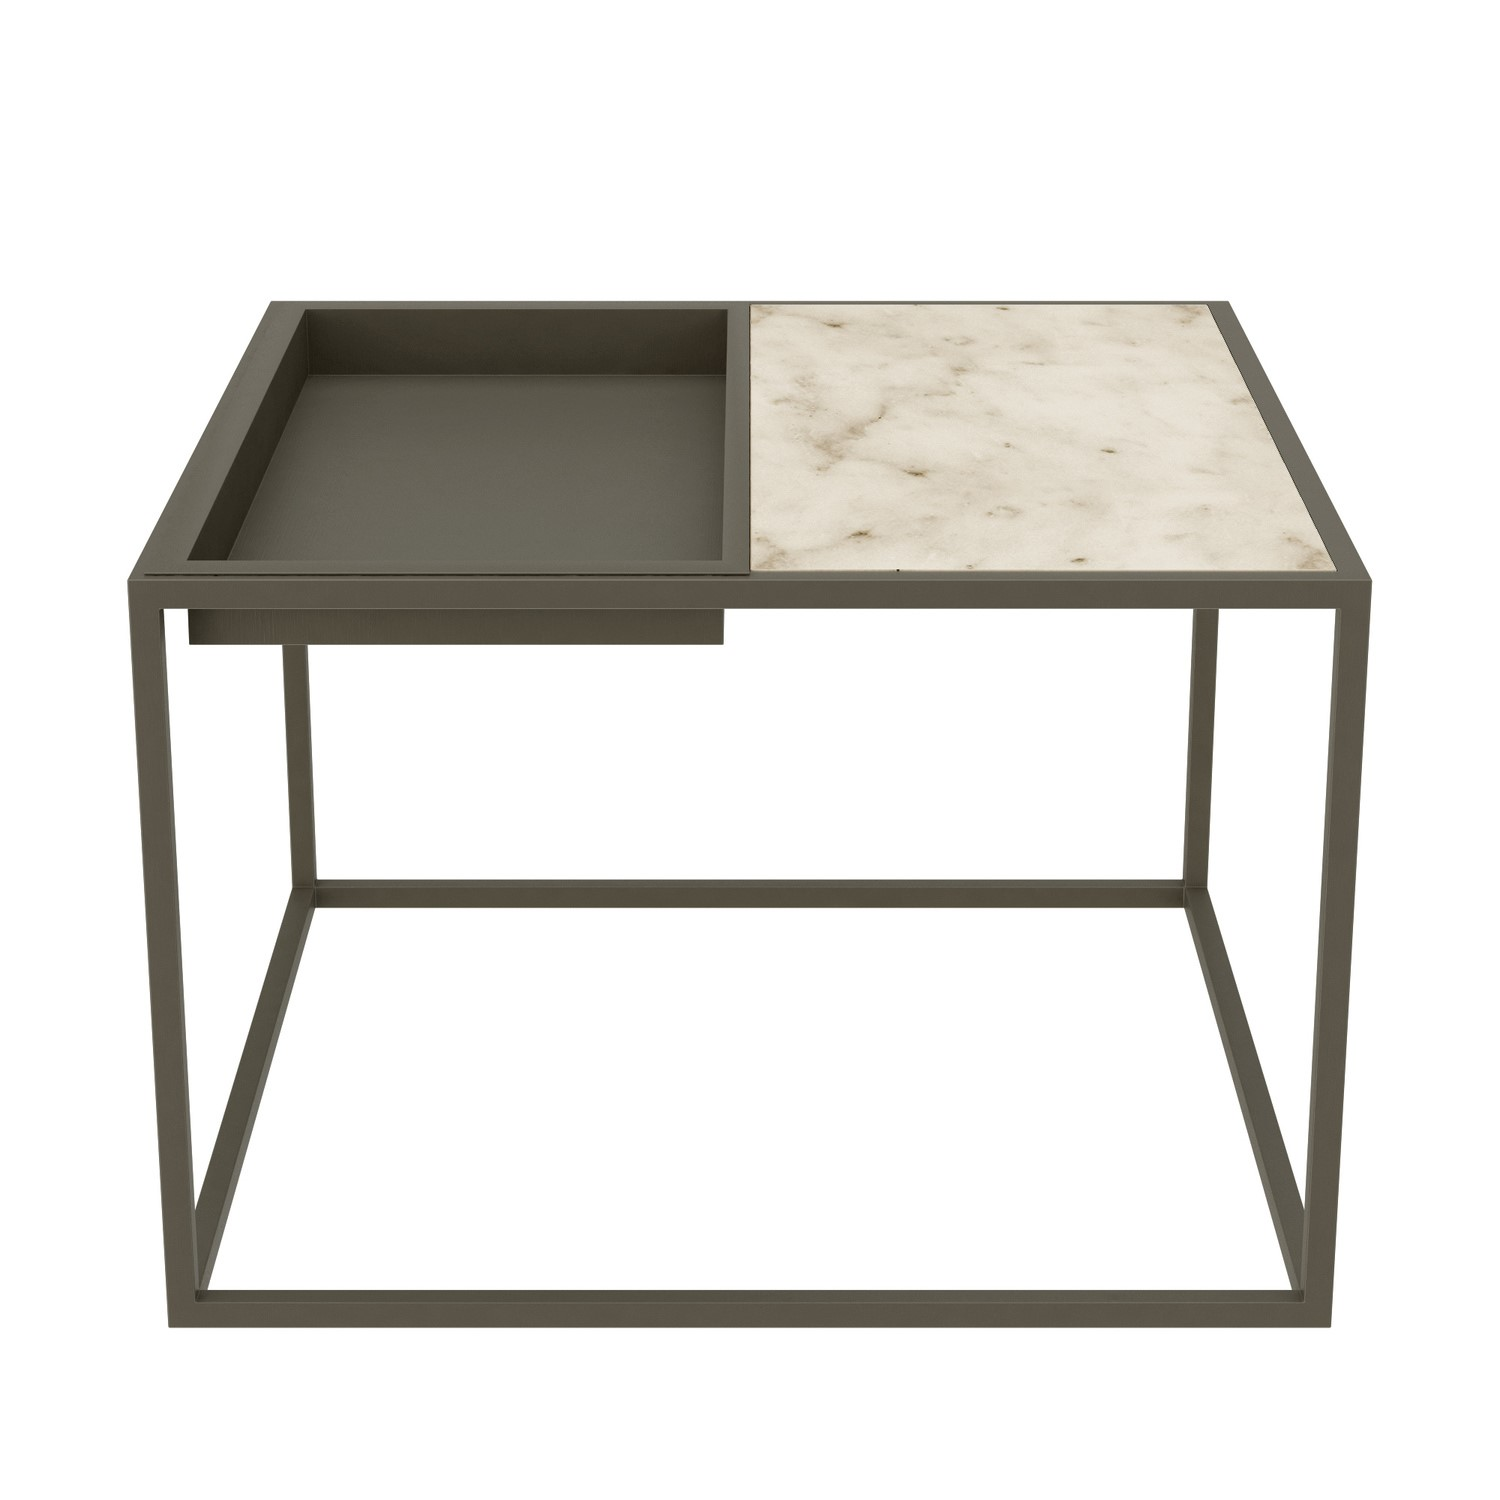 Square Grey Tray Coffee Table With White Marble Top Modern Furniture123